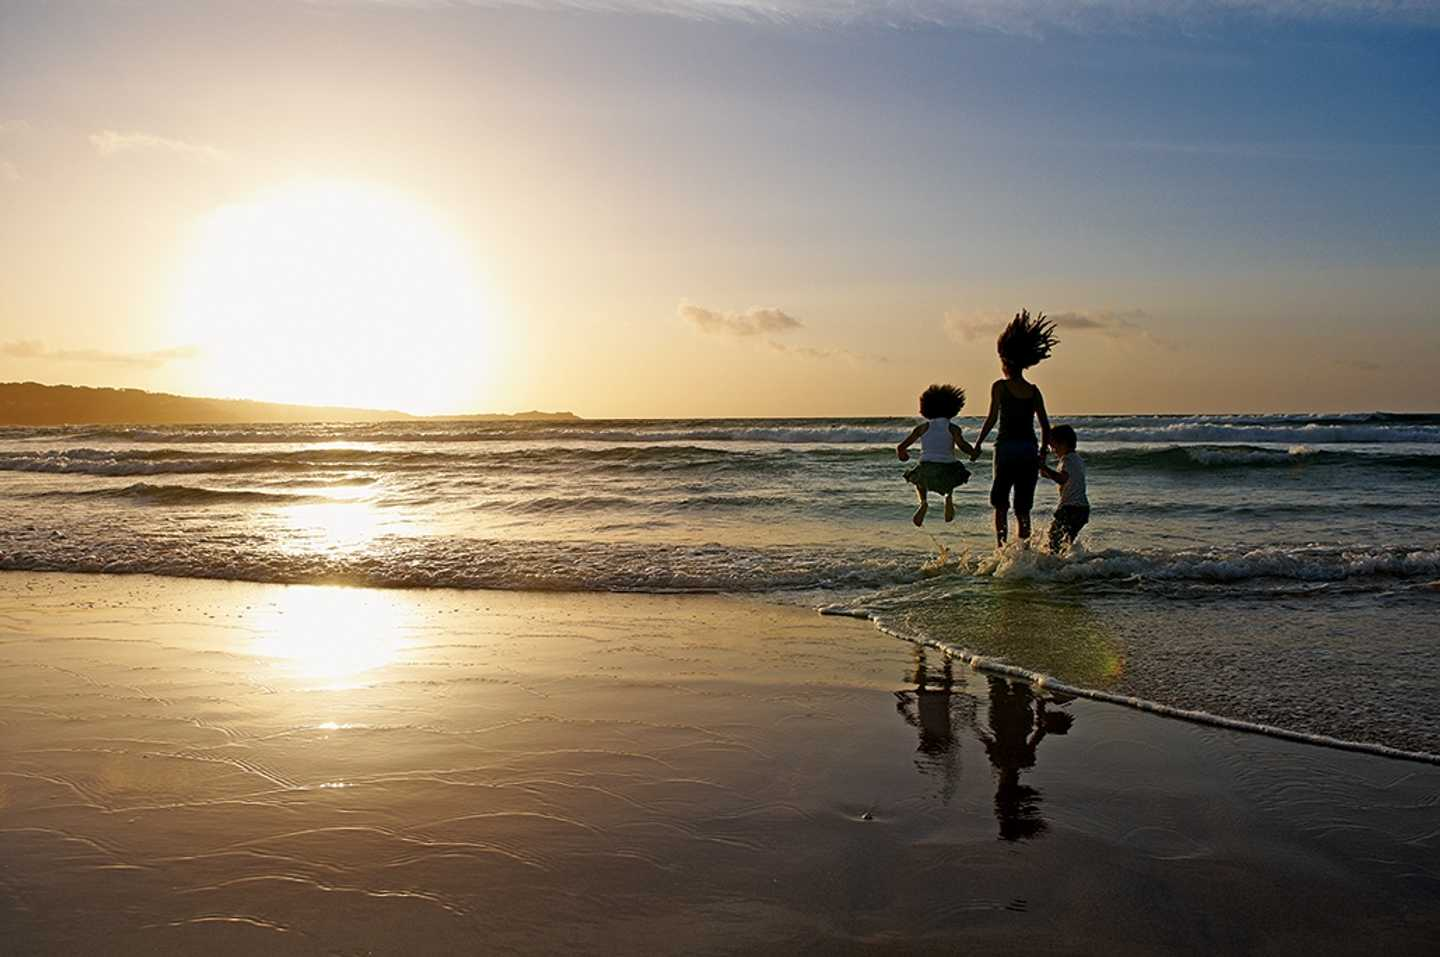 Kids on the beach in Cornwall at sunset